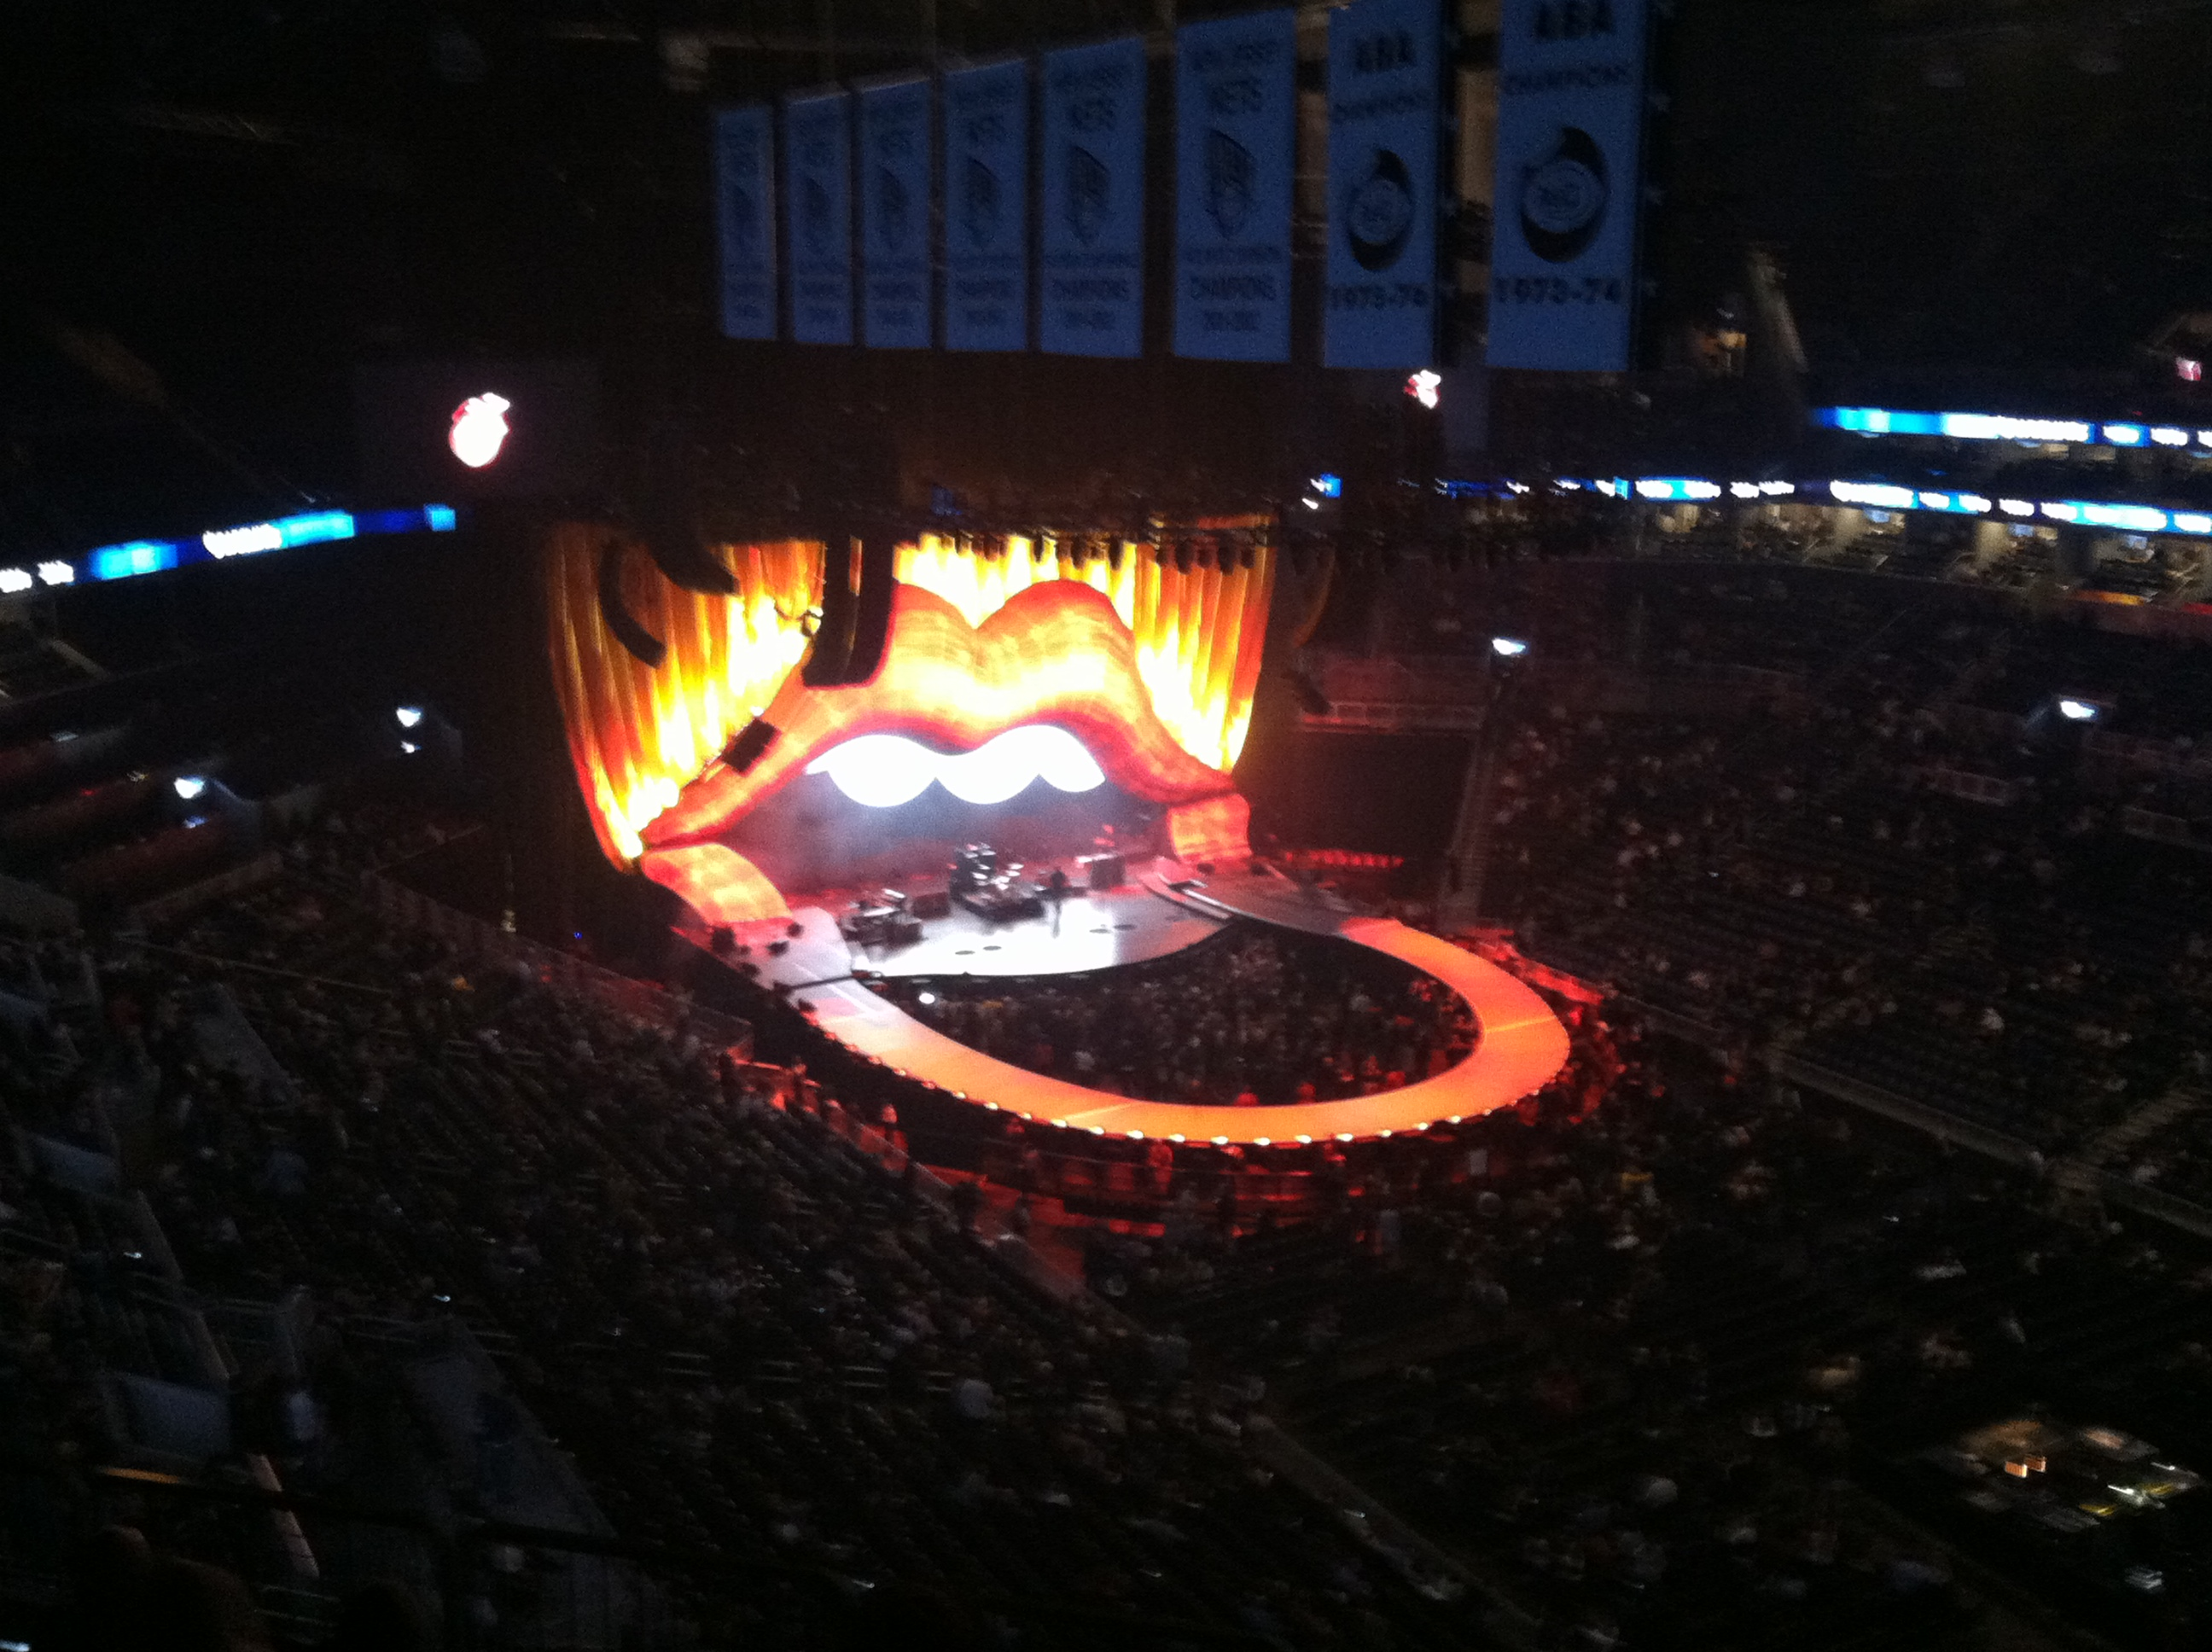 Our view of the Stones concert. We were... not close. Still a good show, though!